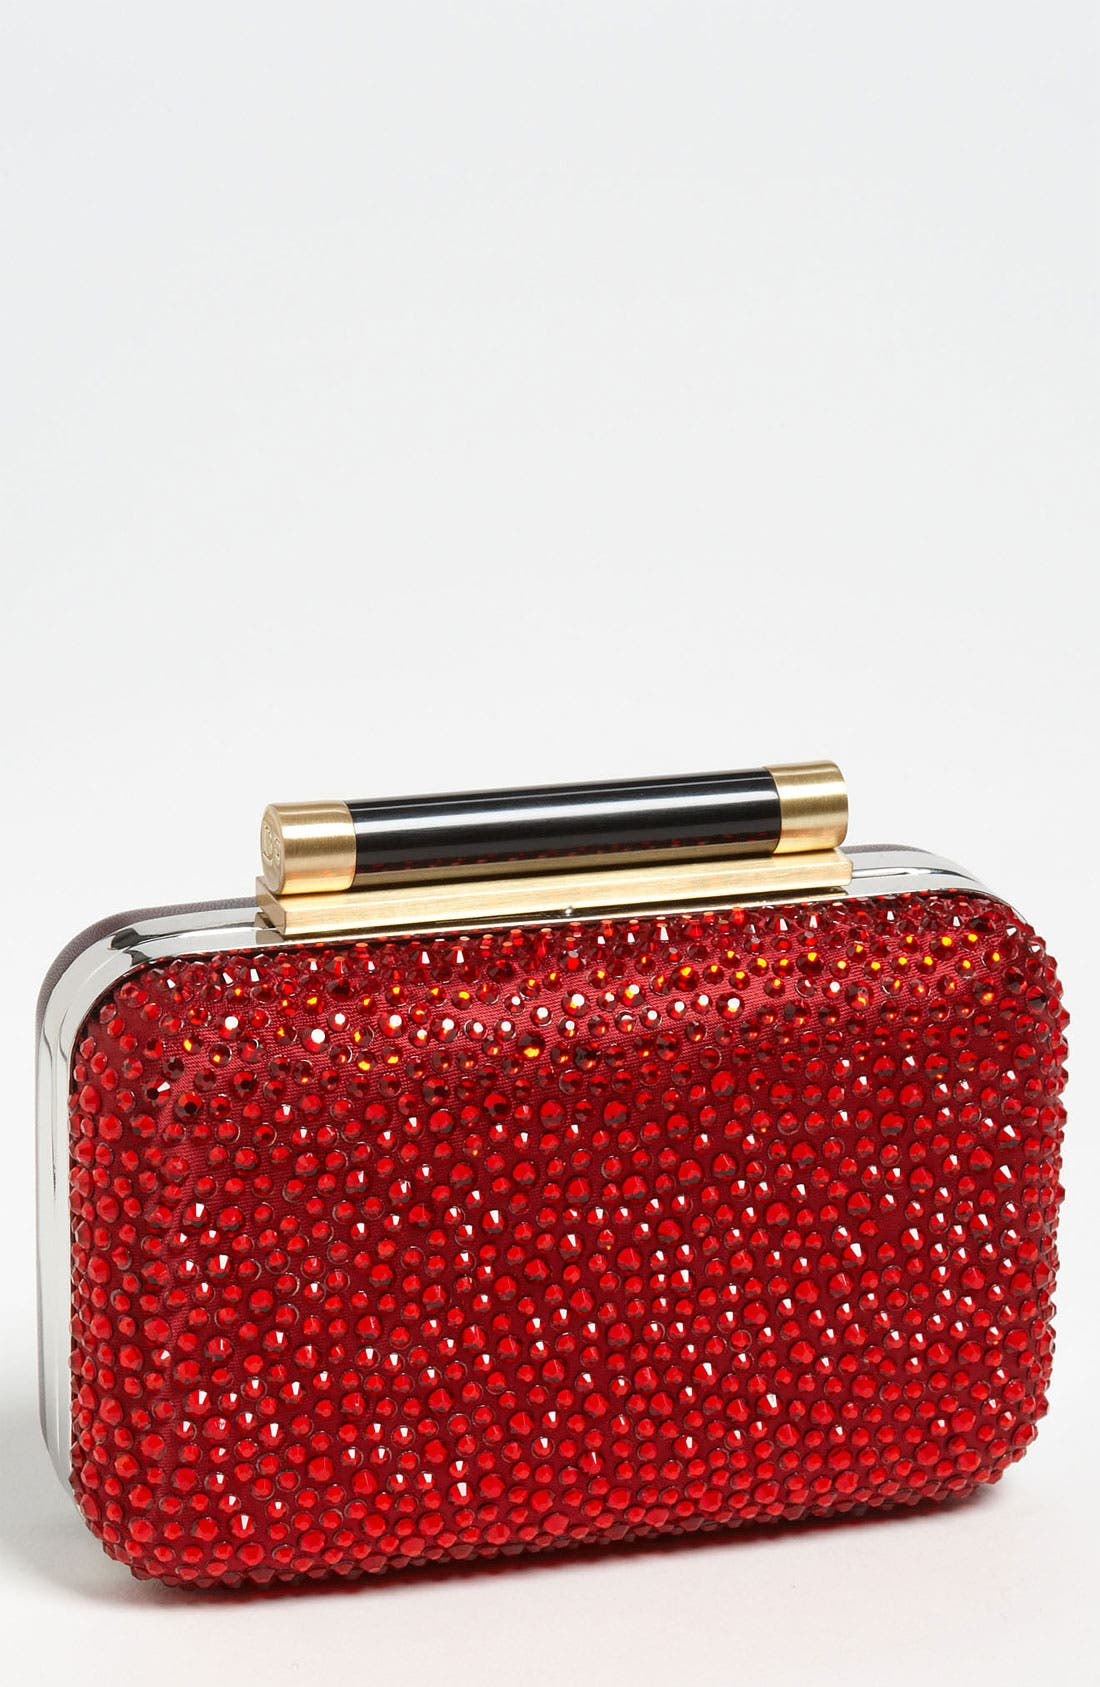 Alternate Image 1 Selected - Diane von Furstenberg 'Tonda - Small' Crystal & Leather Clutch